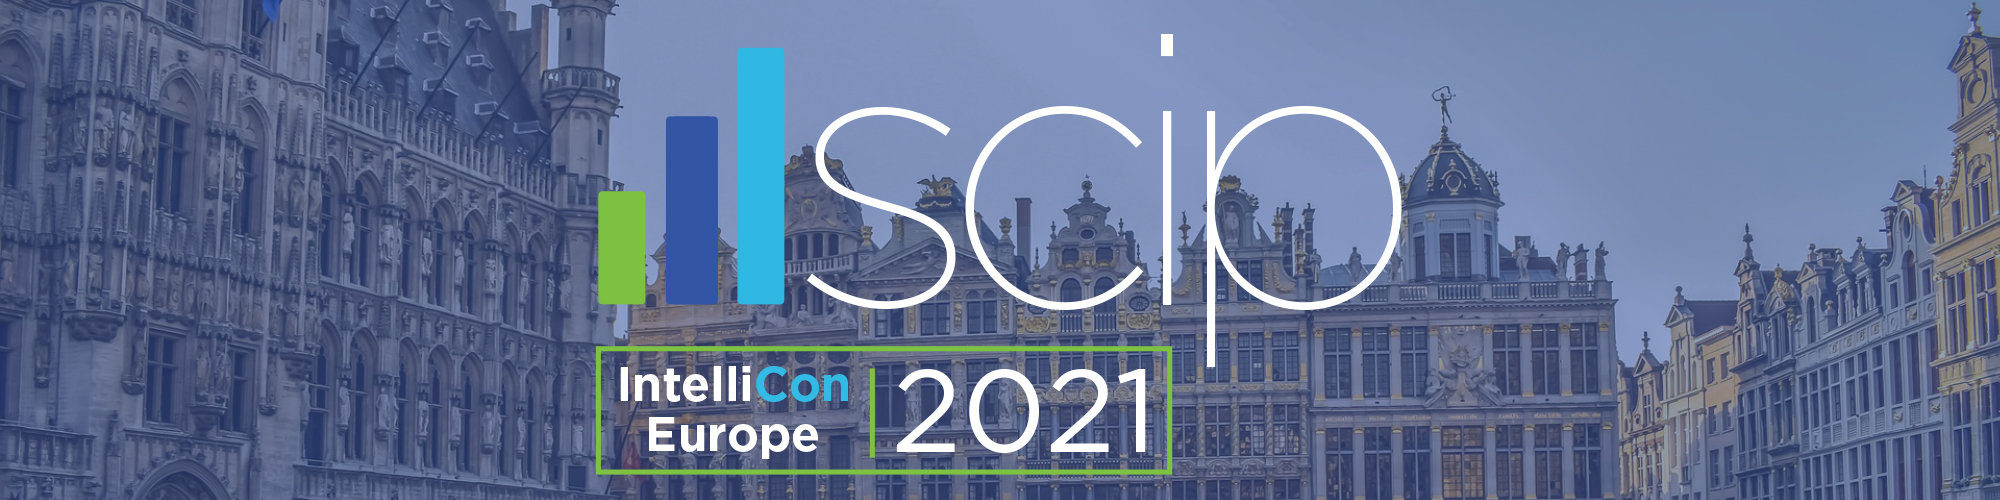 IntelliCon Europe 2021 banner